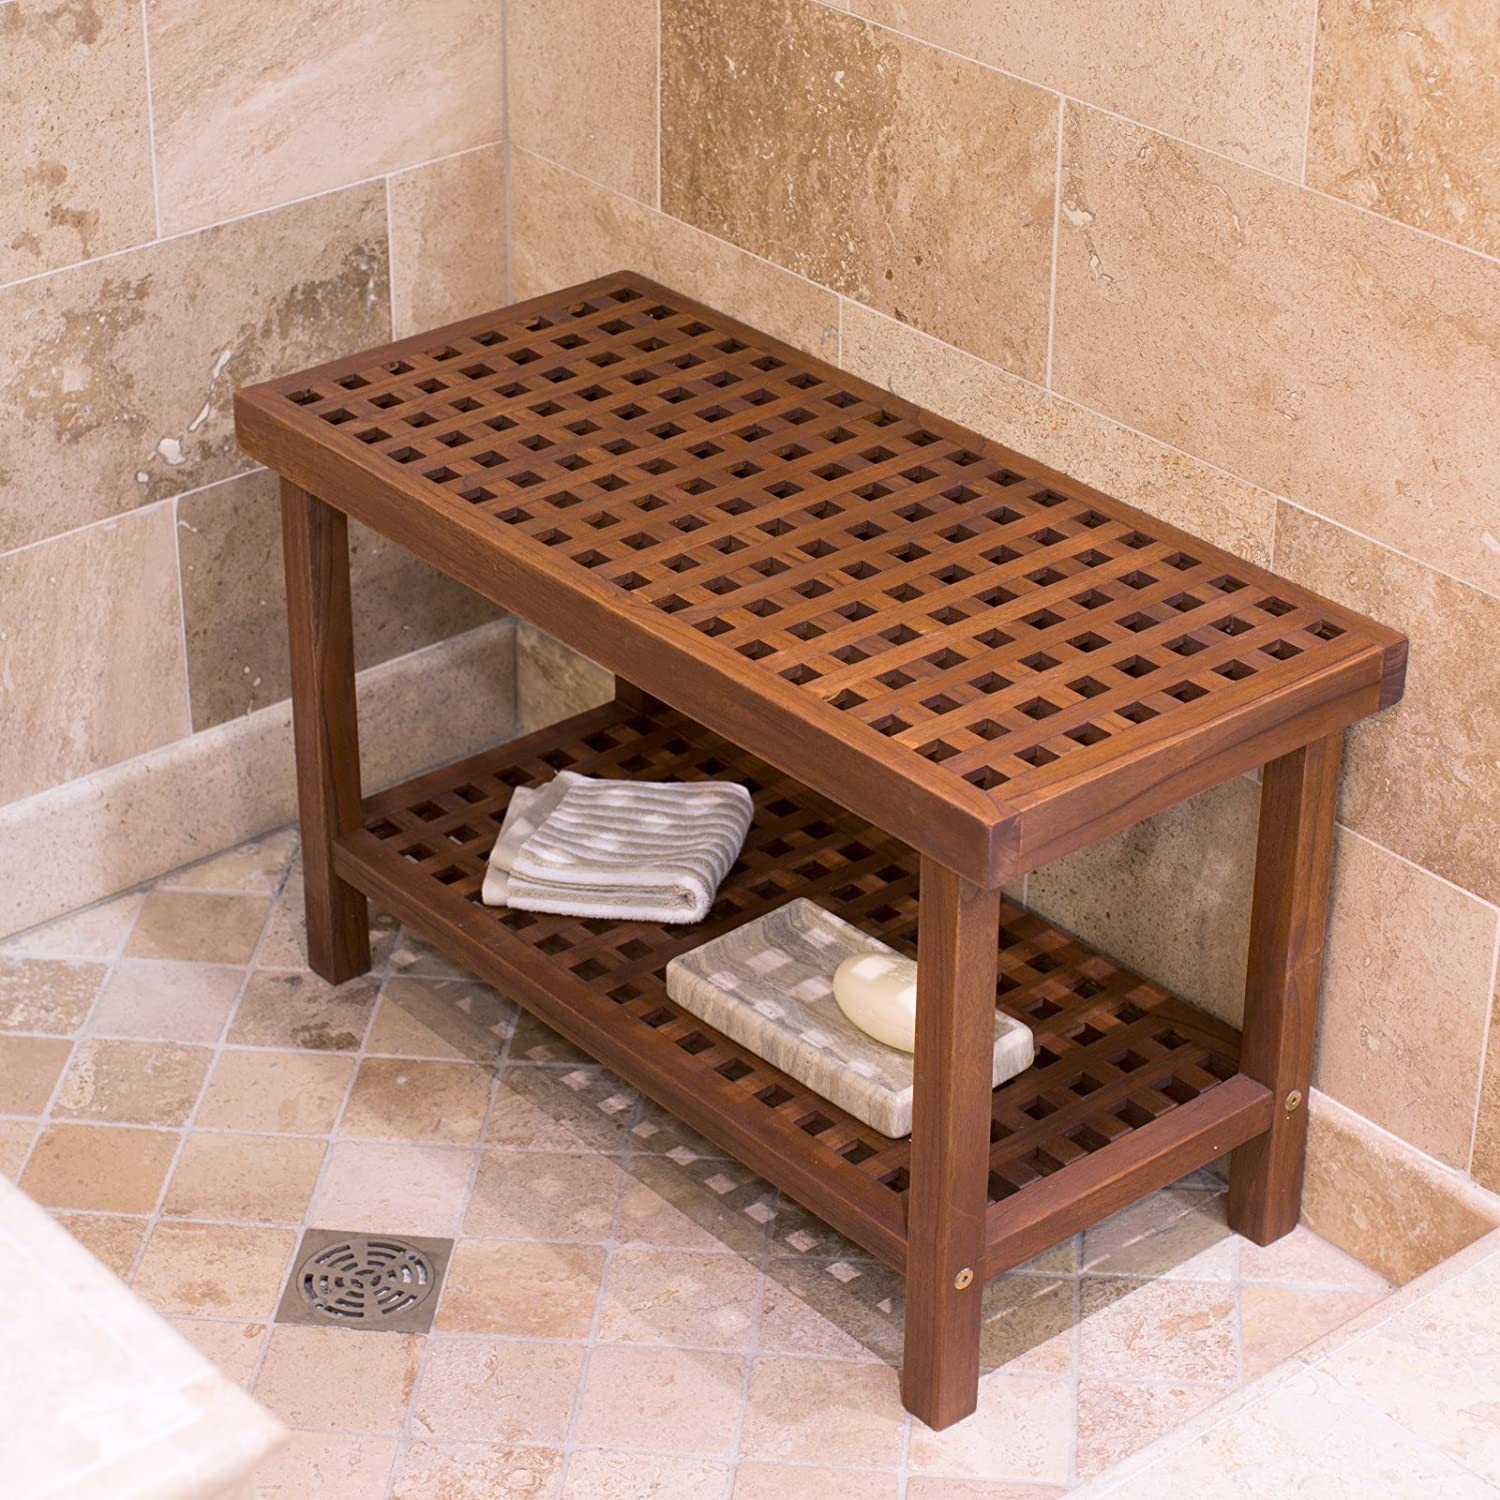 build tips lonielife shower decoration of how stool teak bench to wood